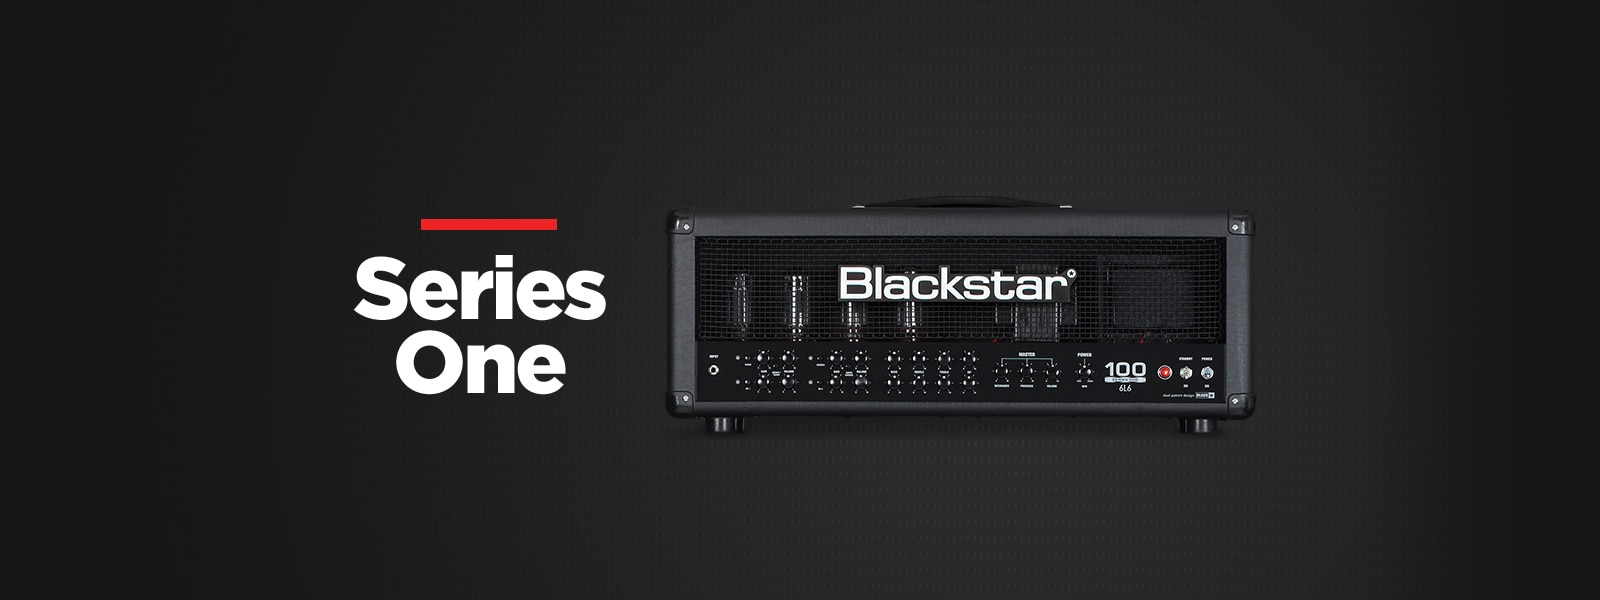 Blackstar Series One Amplifiers